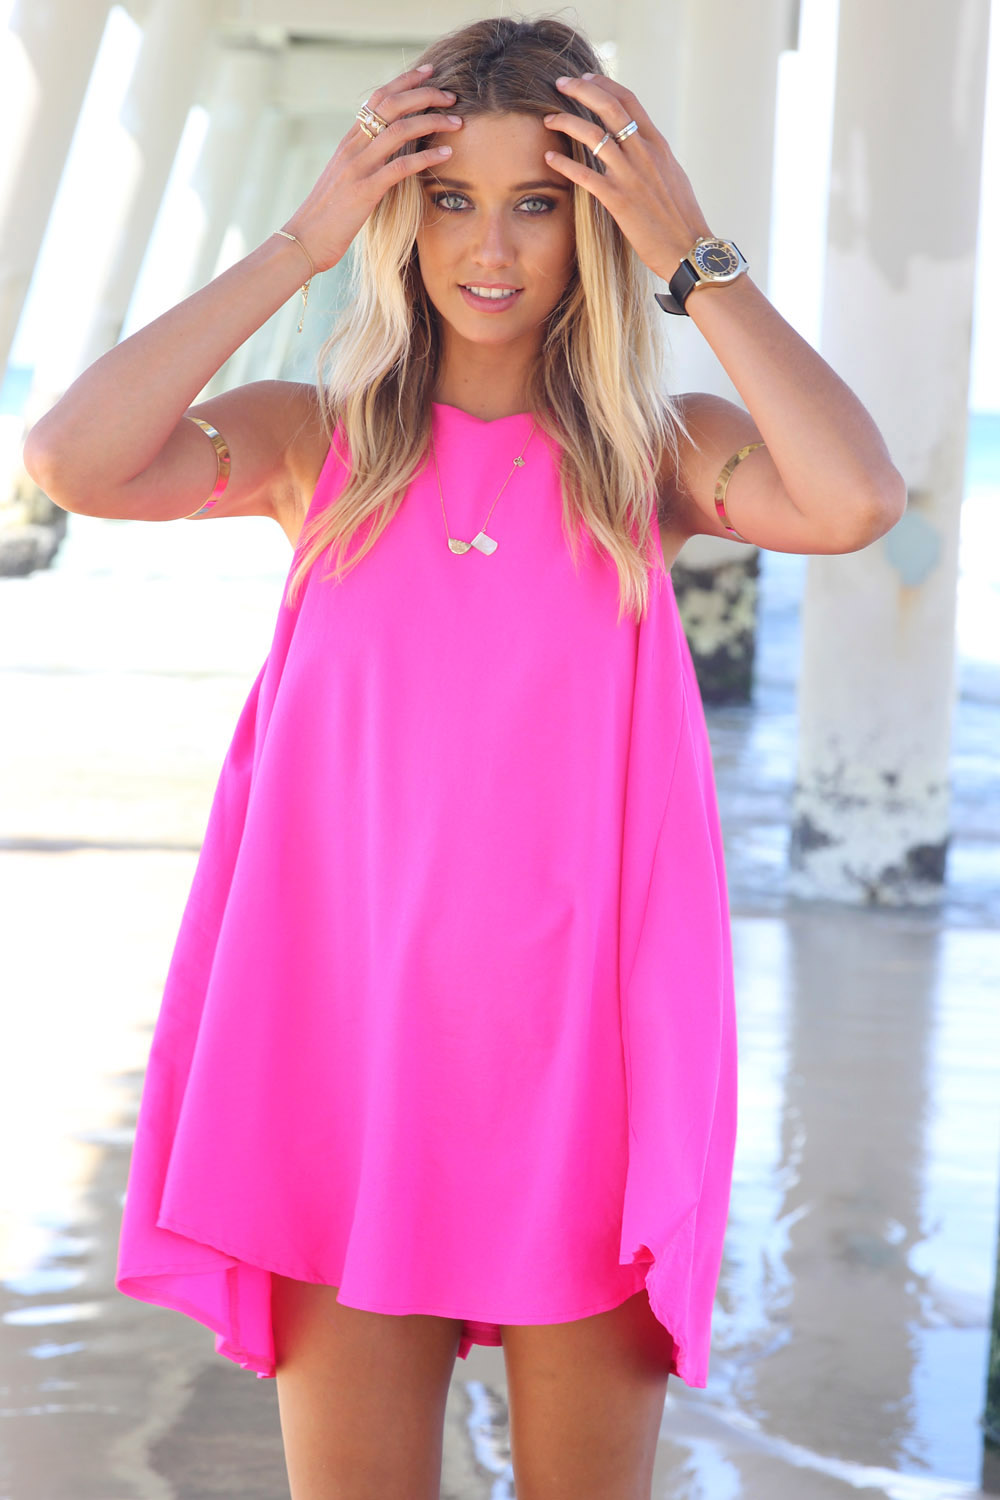 Mini Dress - Hot Pink Flare Sleeveless Dress  UsTrendy